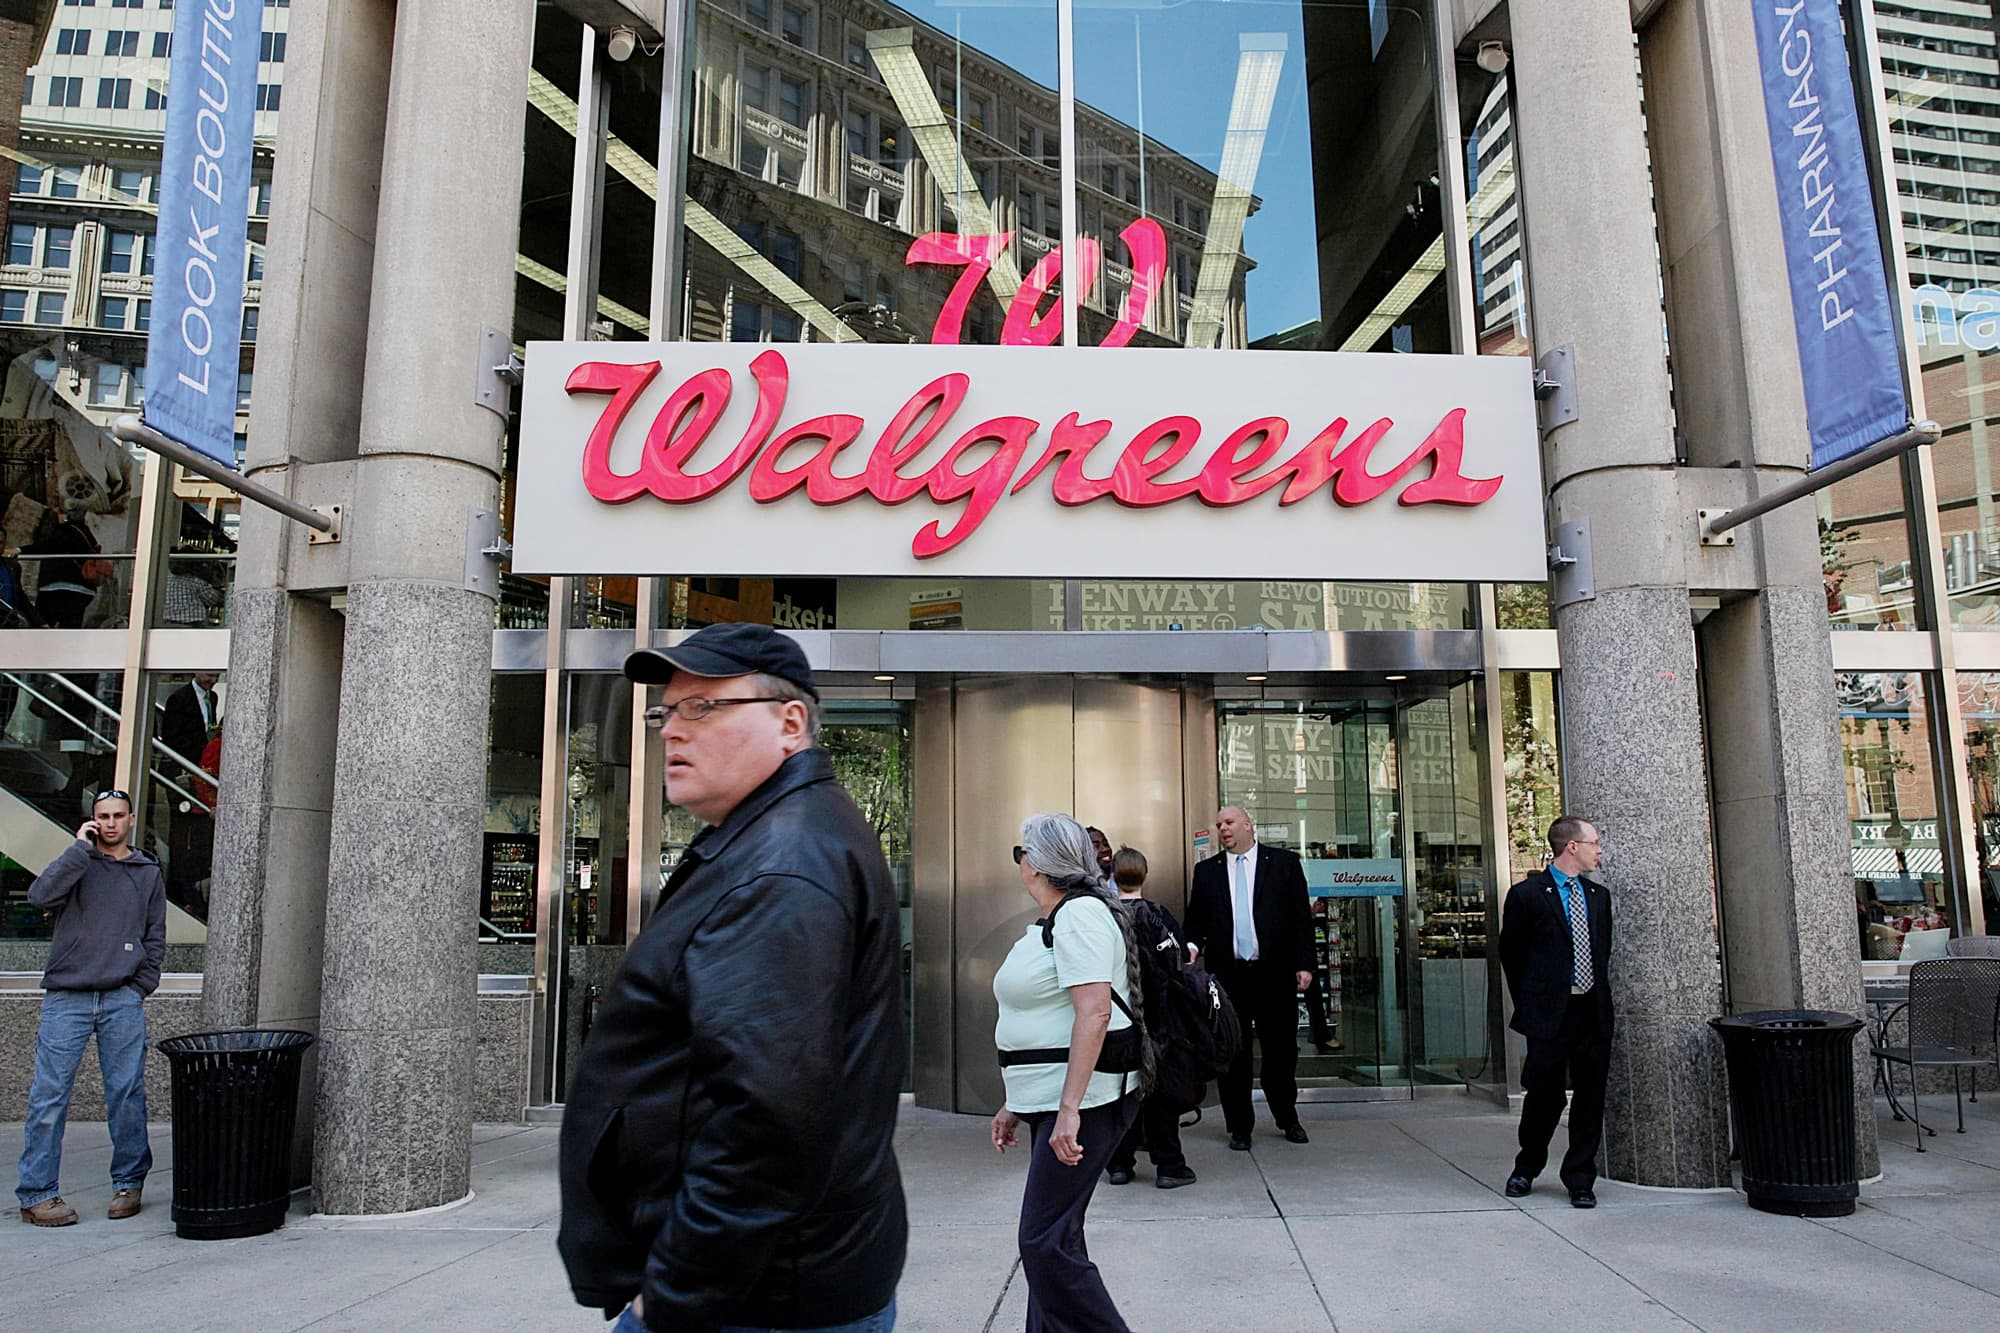 Walgreens Stock Quote Walgreens Profit Jumps Rite Aid Deal Seen Closing In 2017